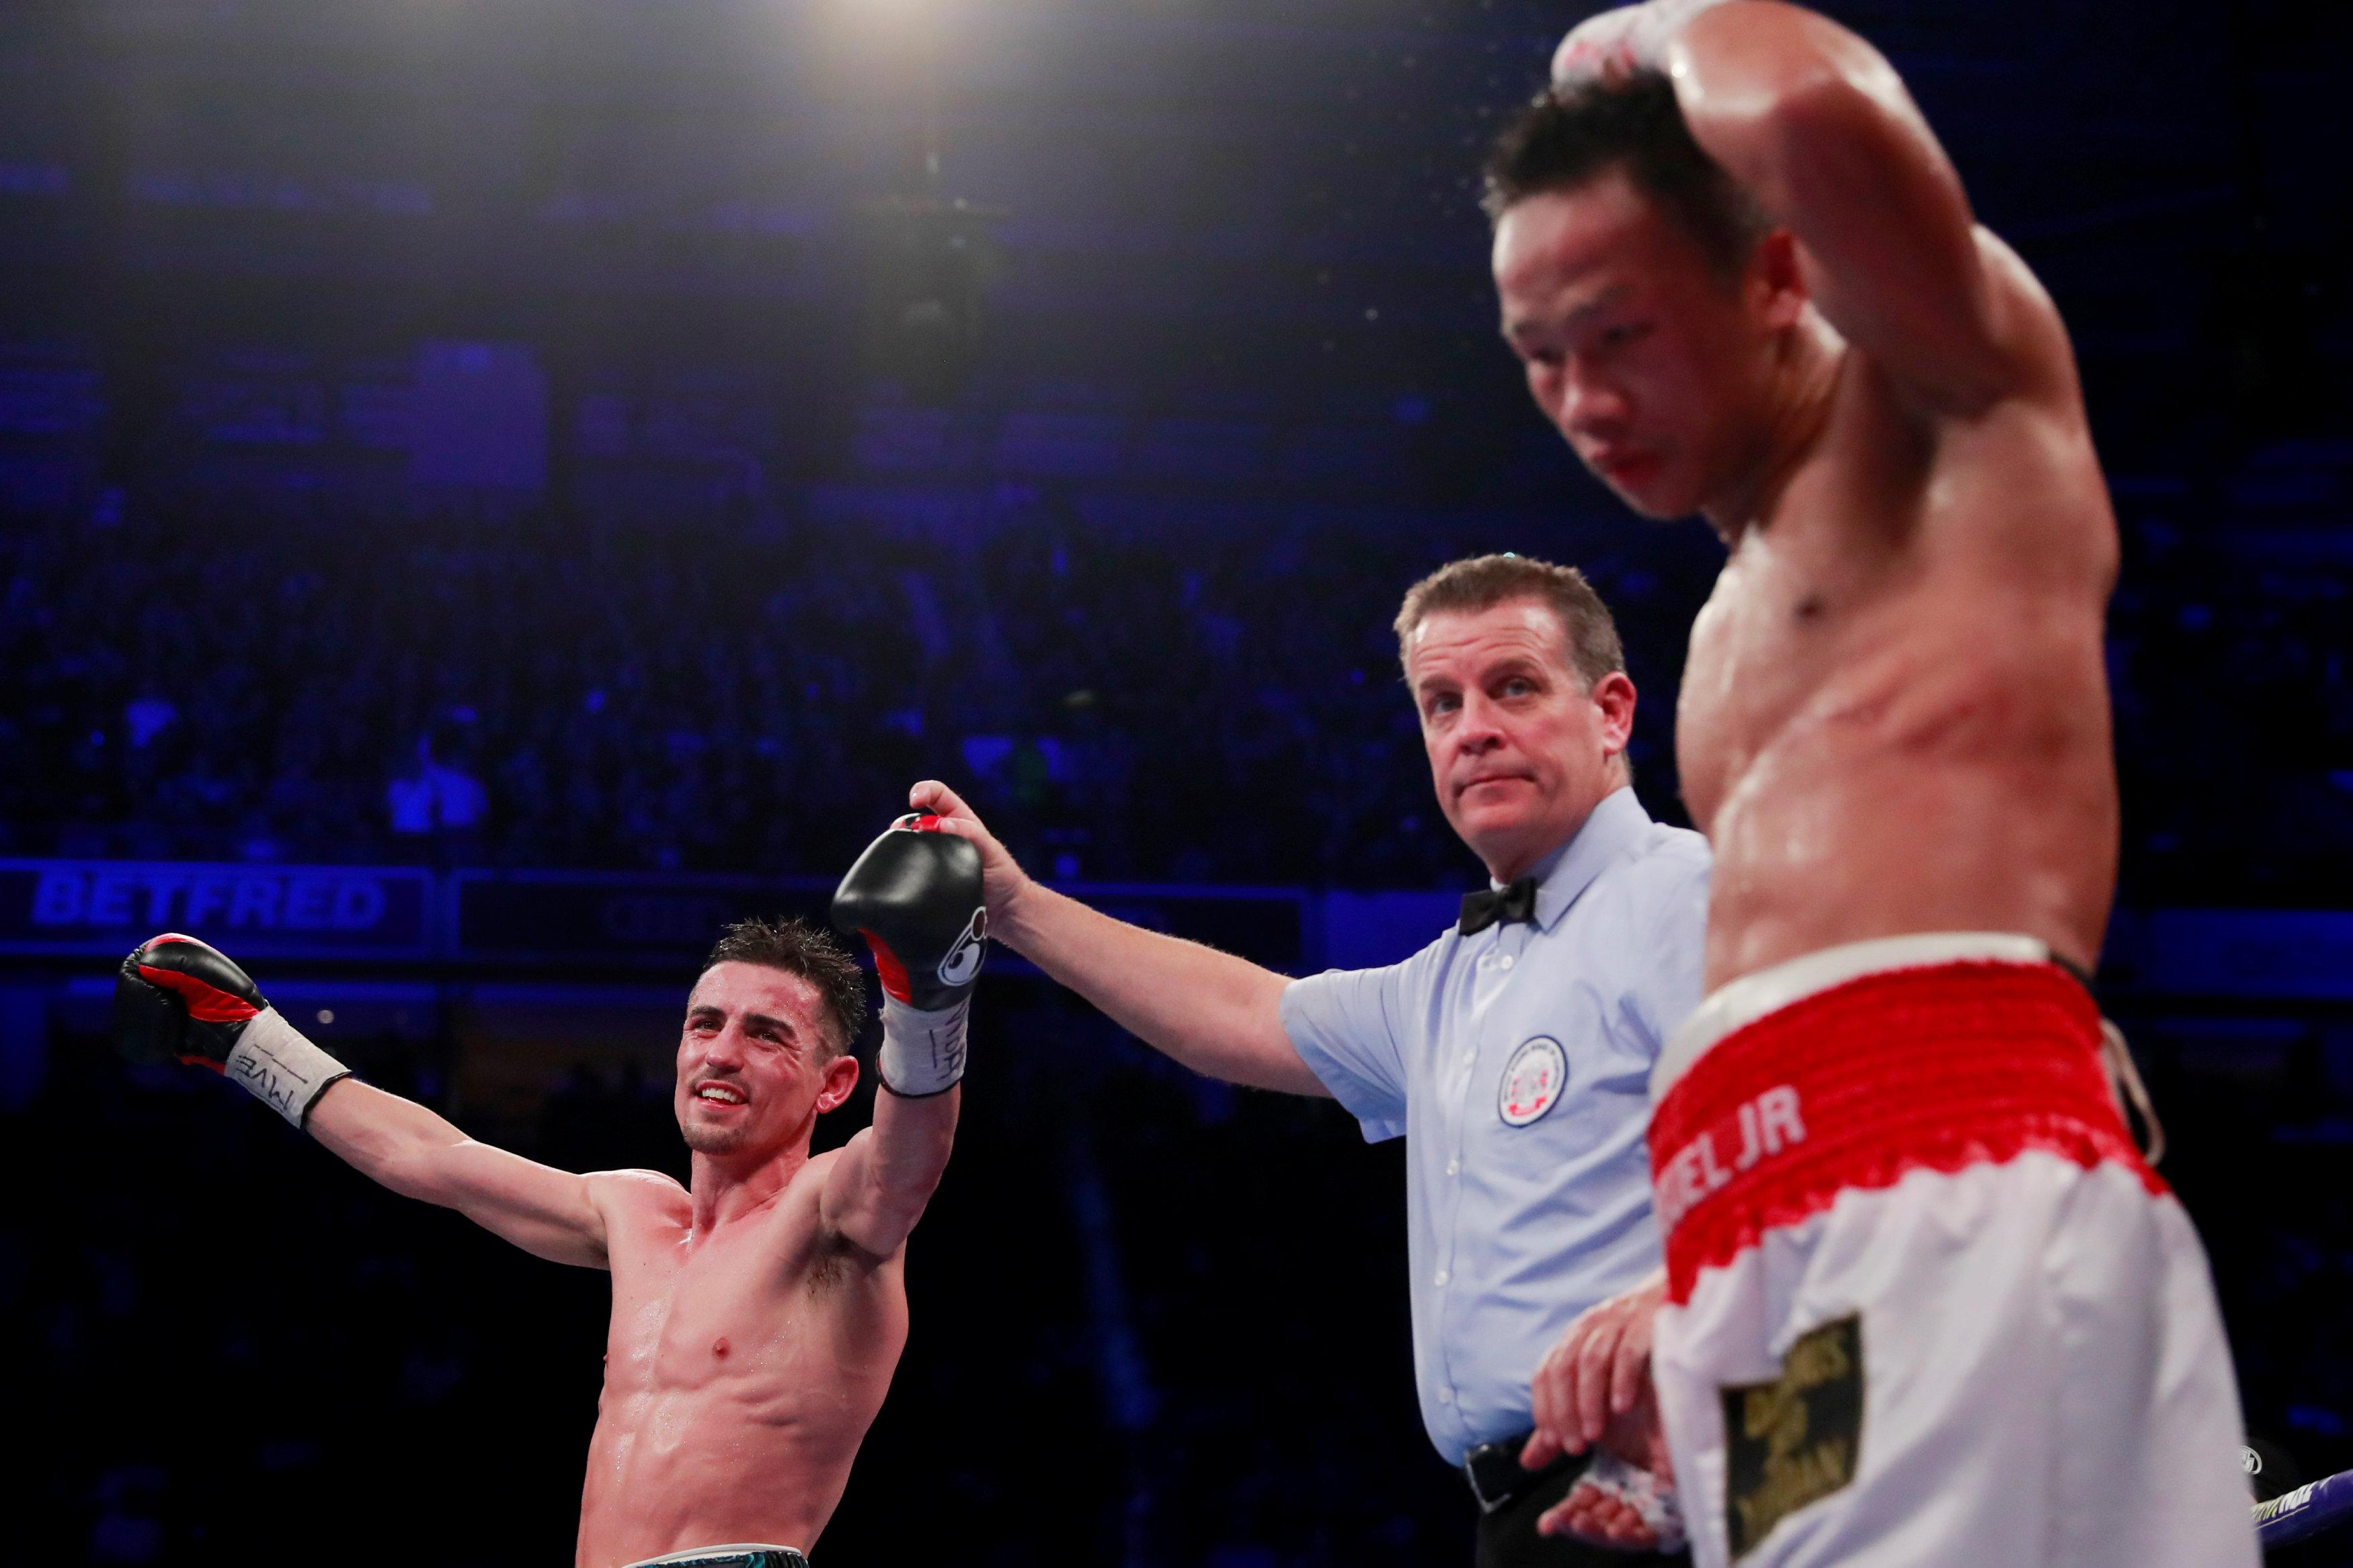 Anthony Crolla comfortably defeated Daud Yordan to earn a shot at the WBA world title